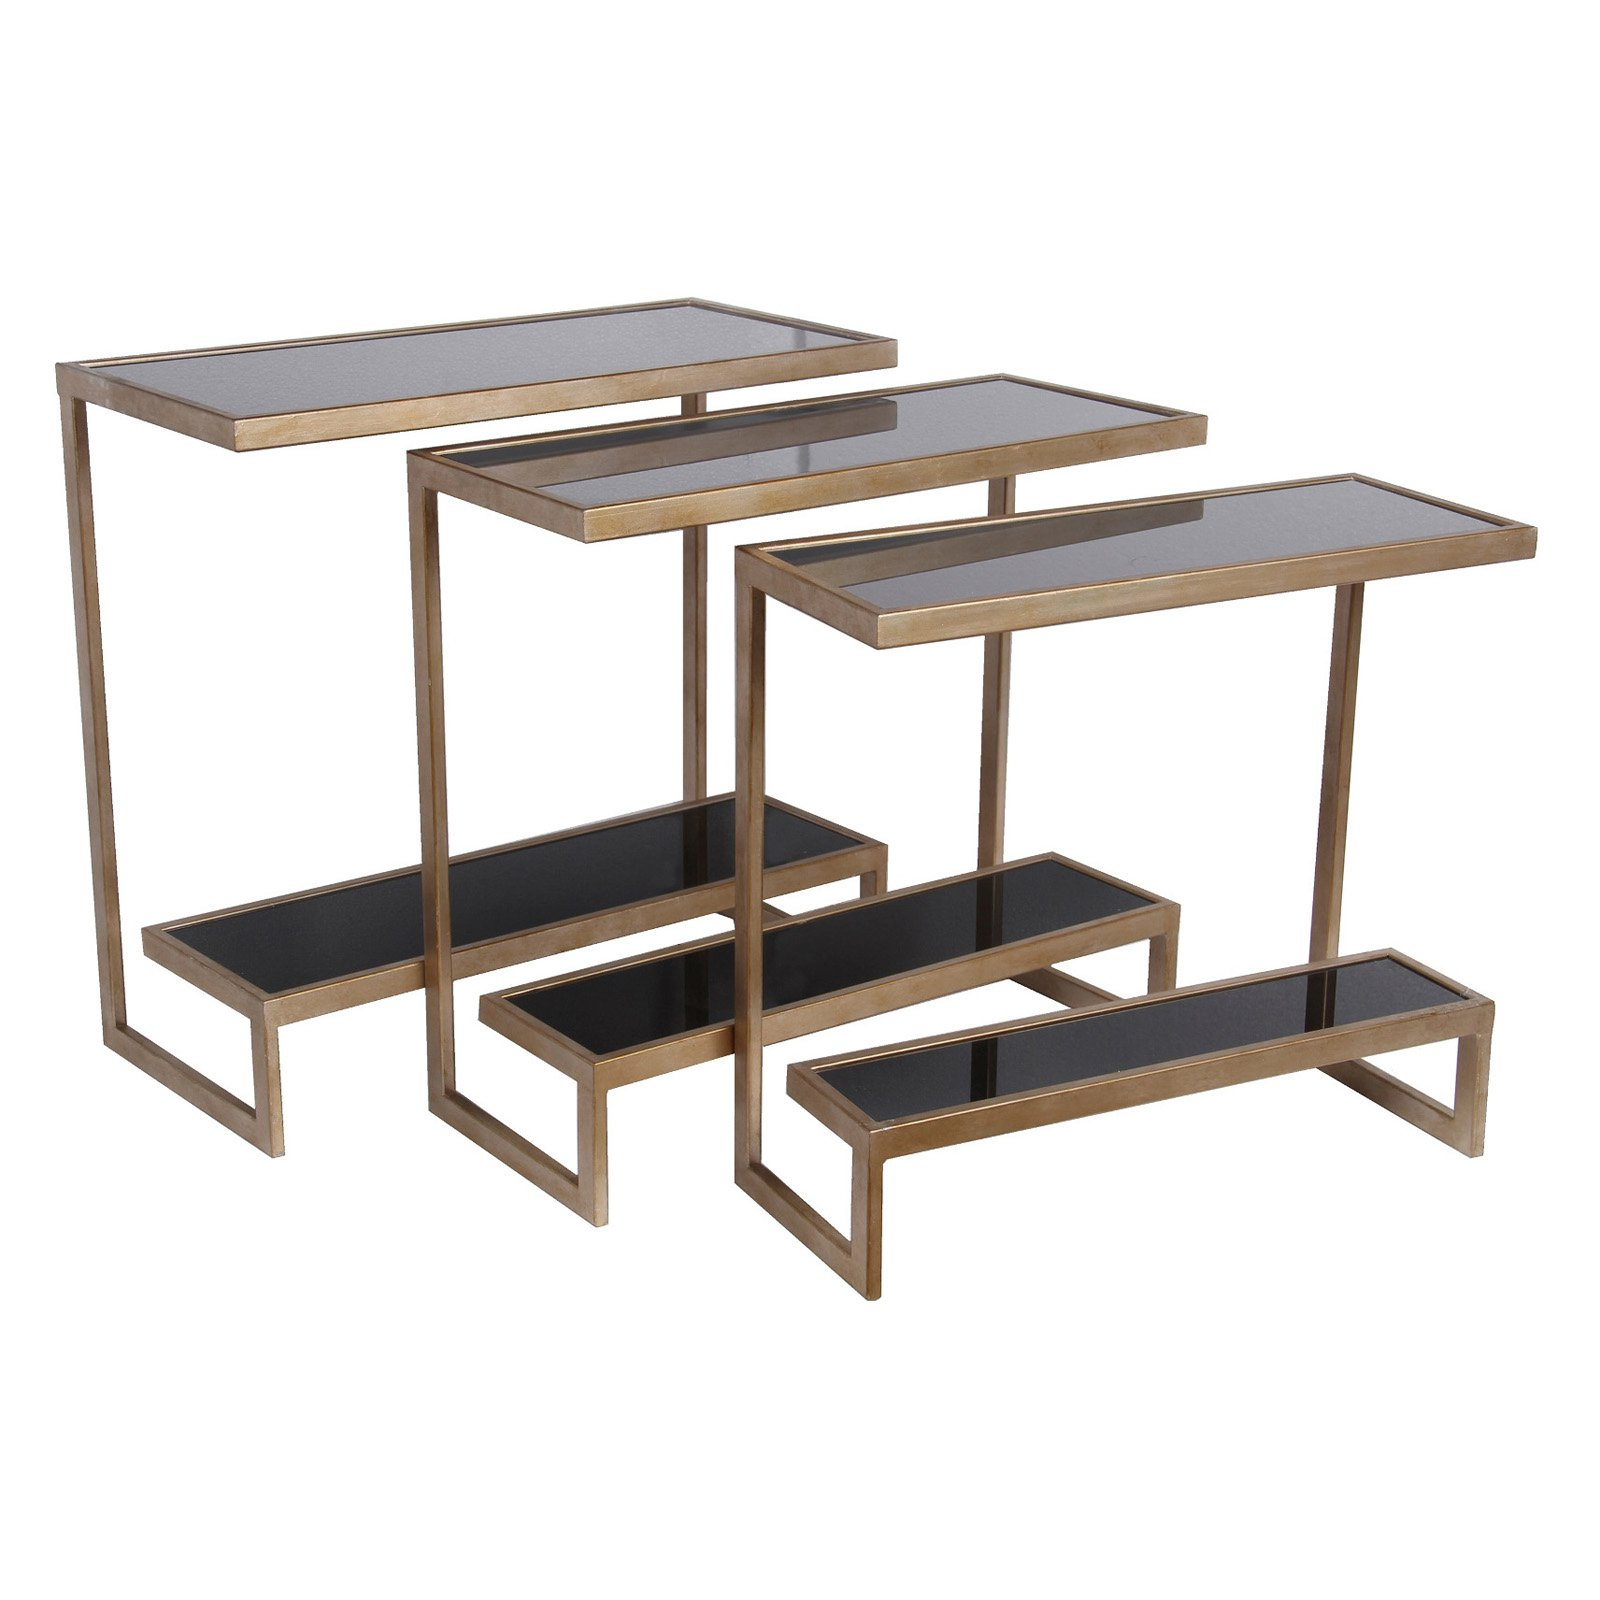 Privilege International Accent Tables - Set of 3 - Black and Gold